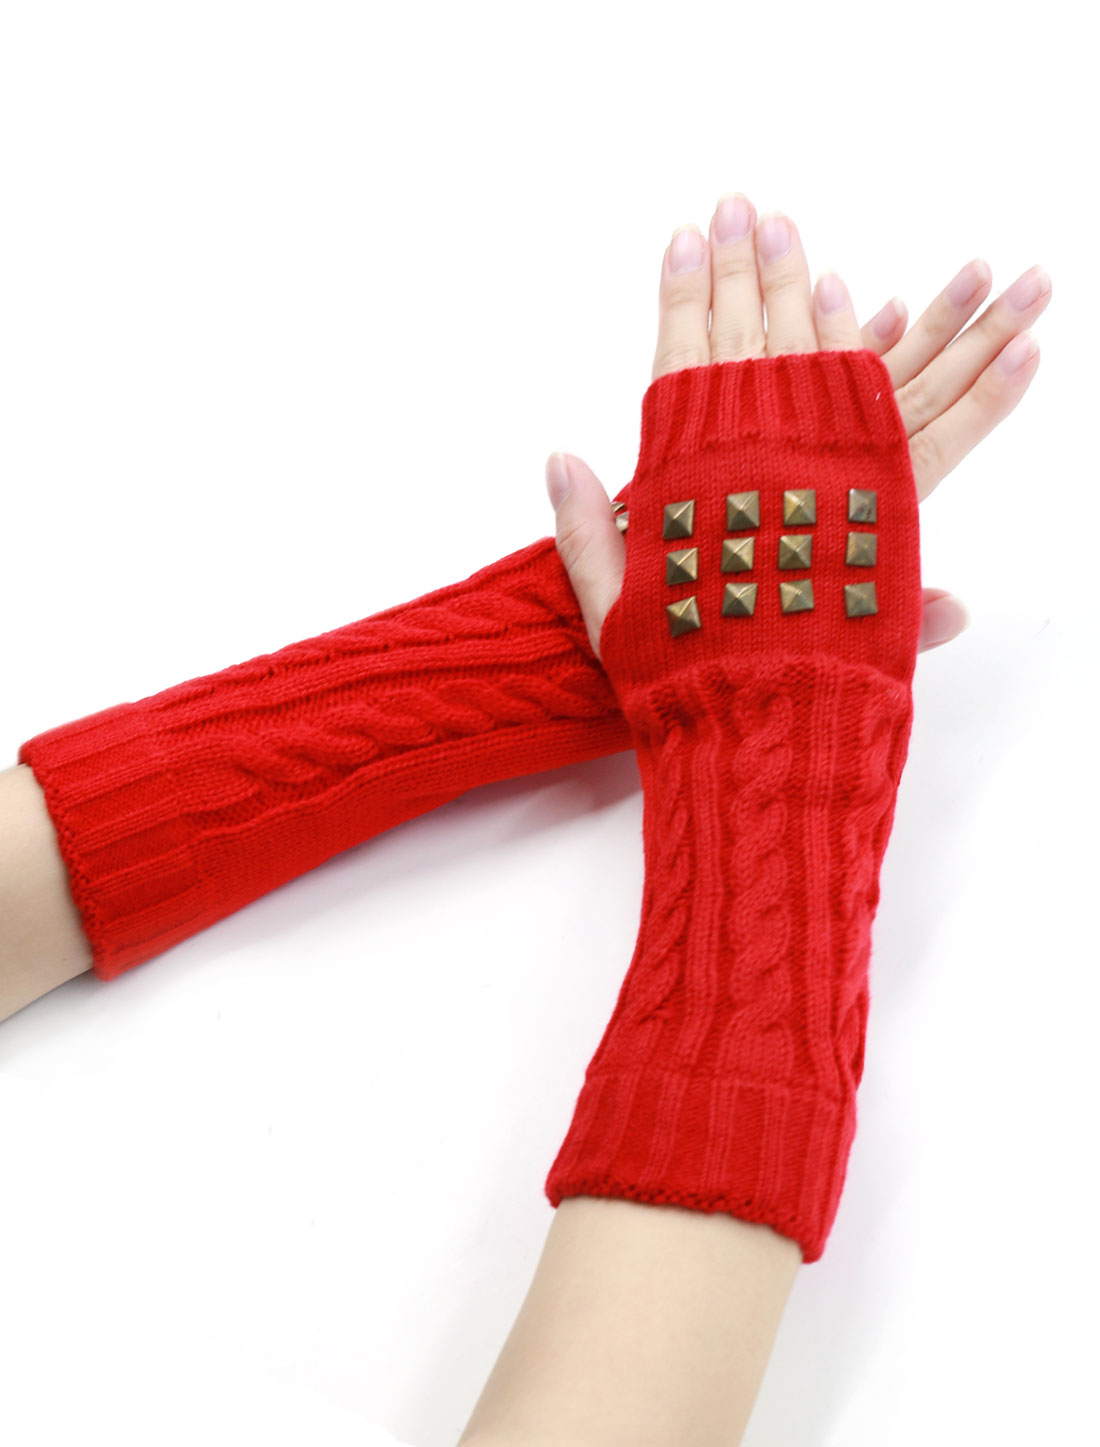 Unisex Fingerless Thumbhole Cable Knit Rivets Decor Elbow Length Gloves Pair Red